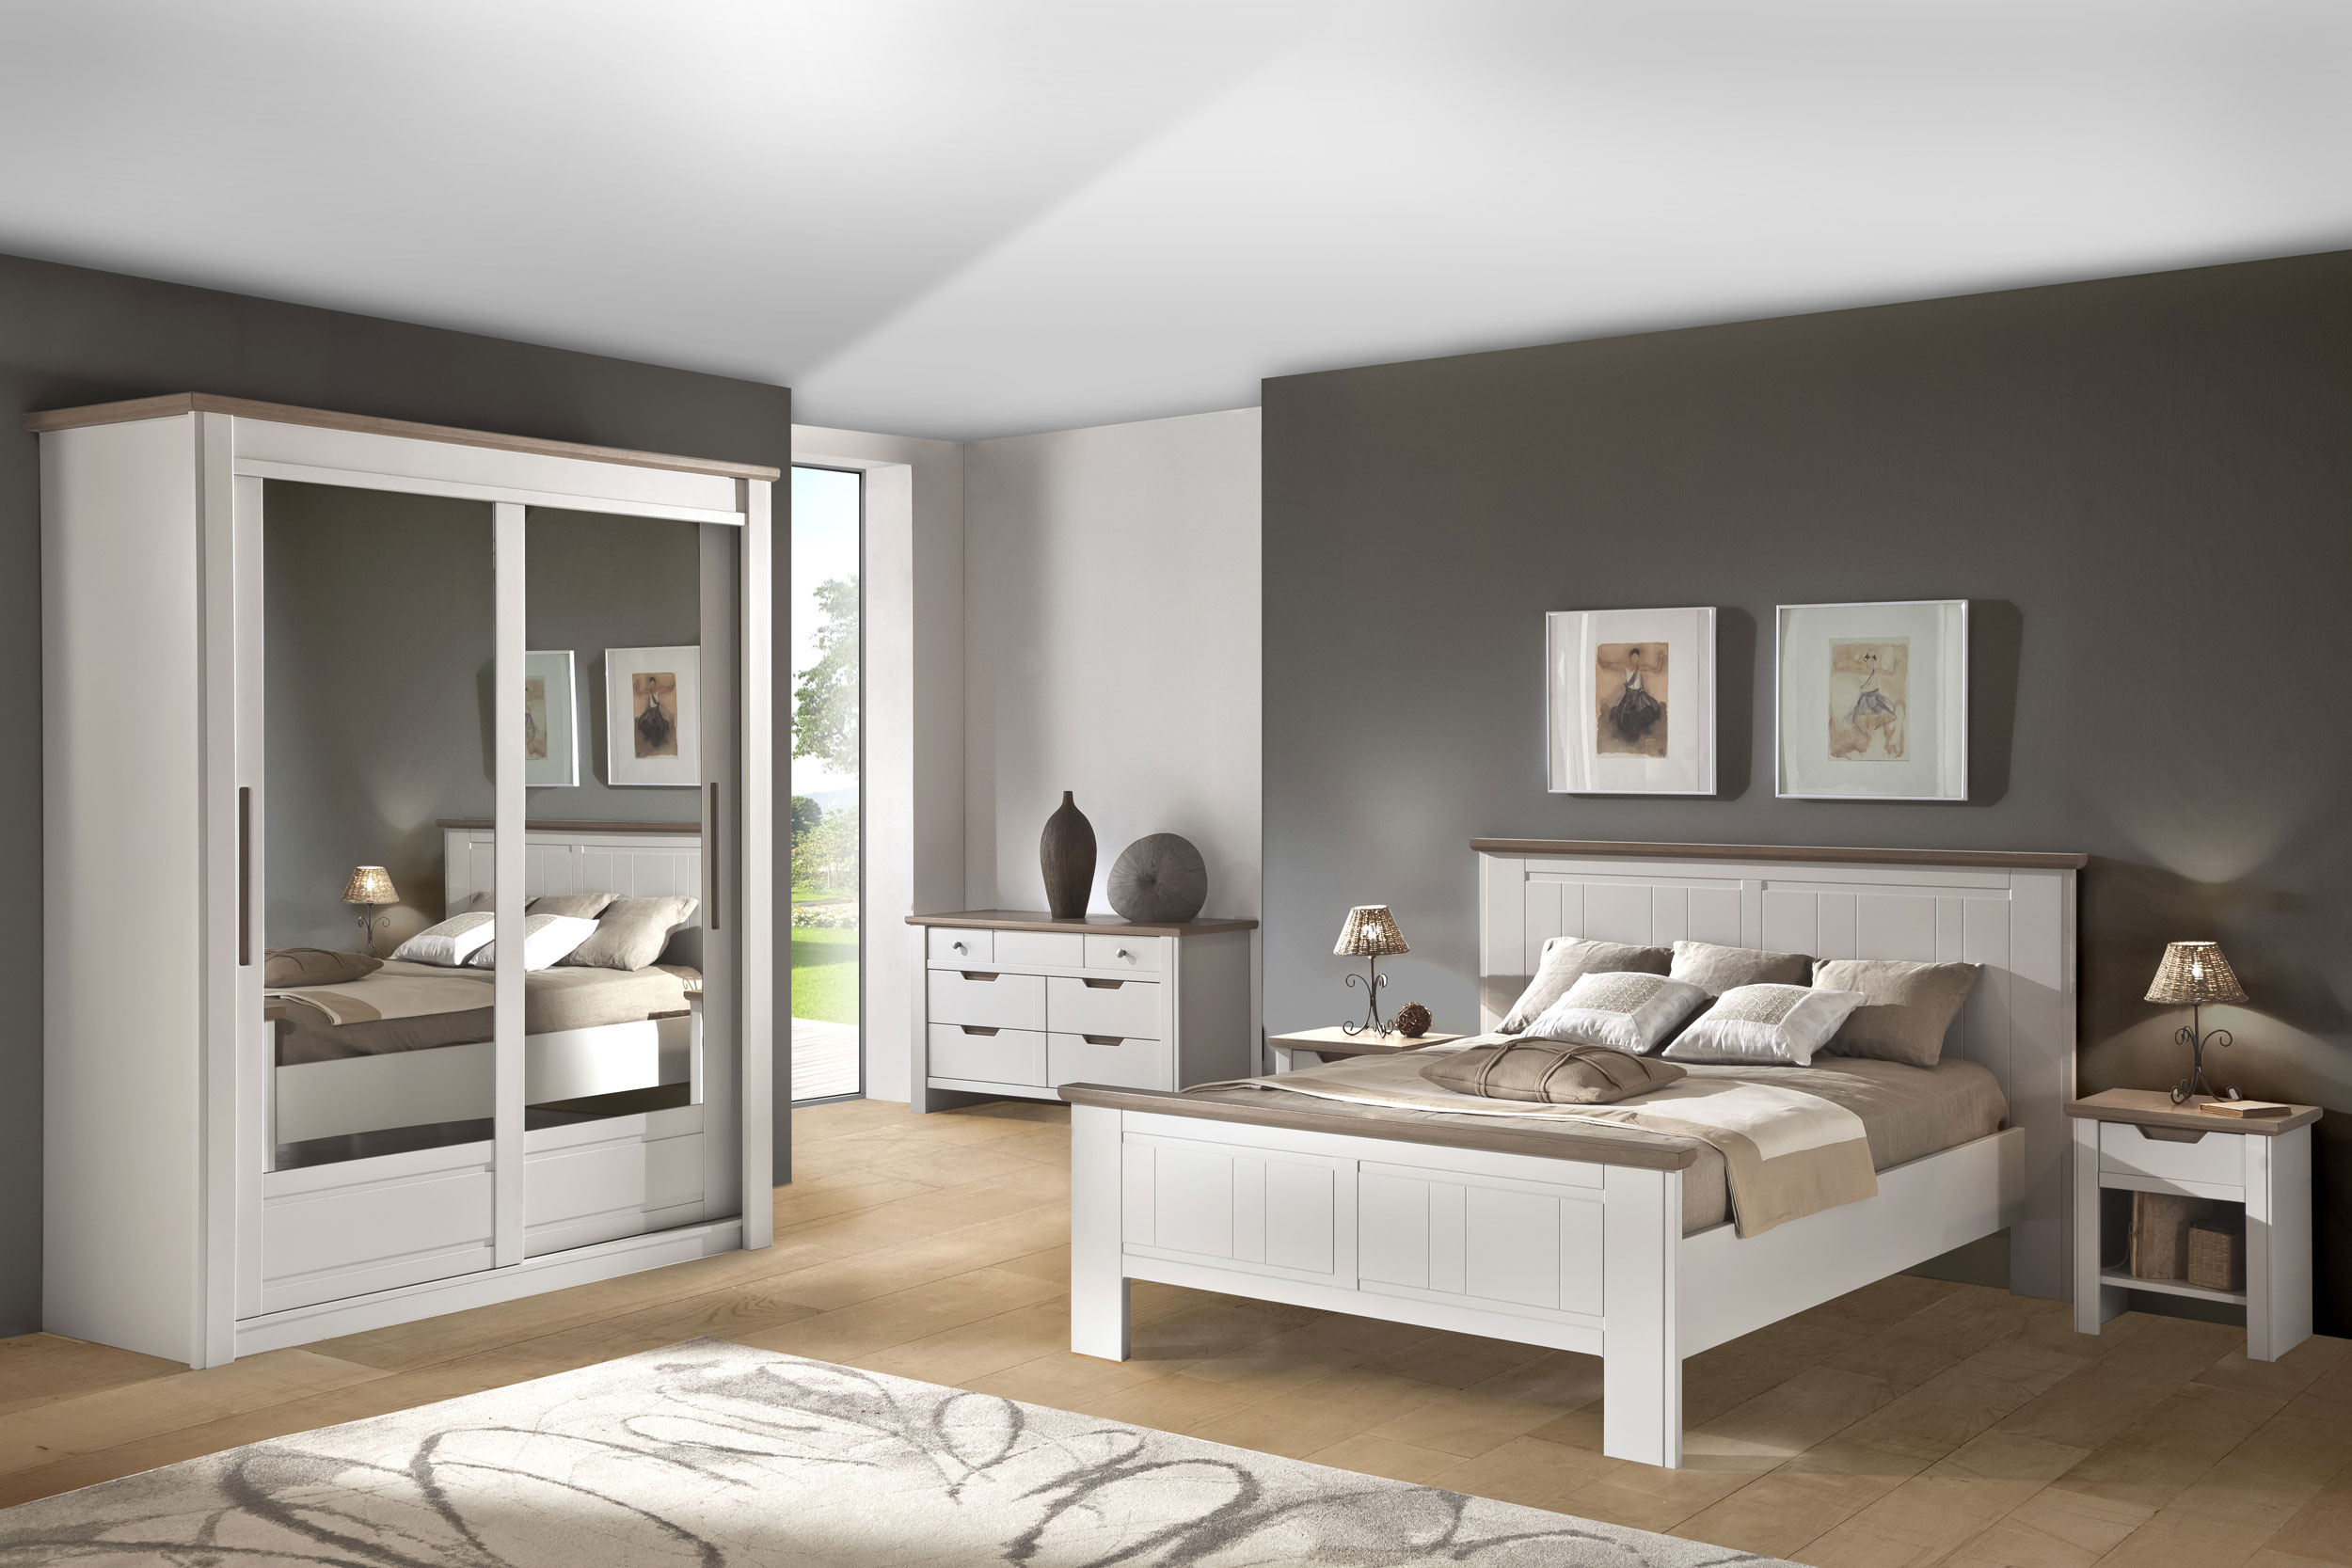 d coration chambre adulte bois. Black Bedroom Furniture Sets. Home Design Ideas